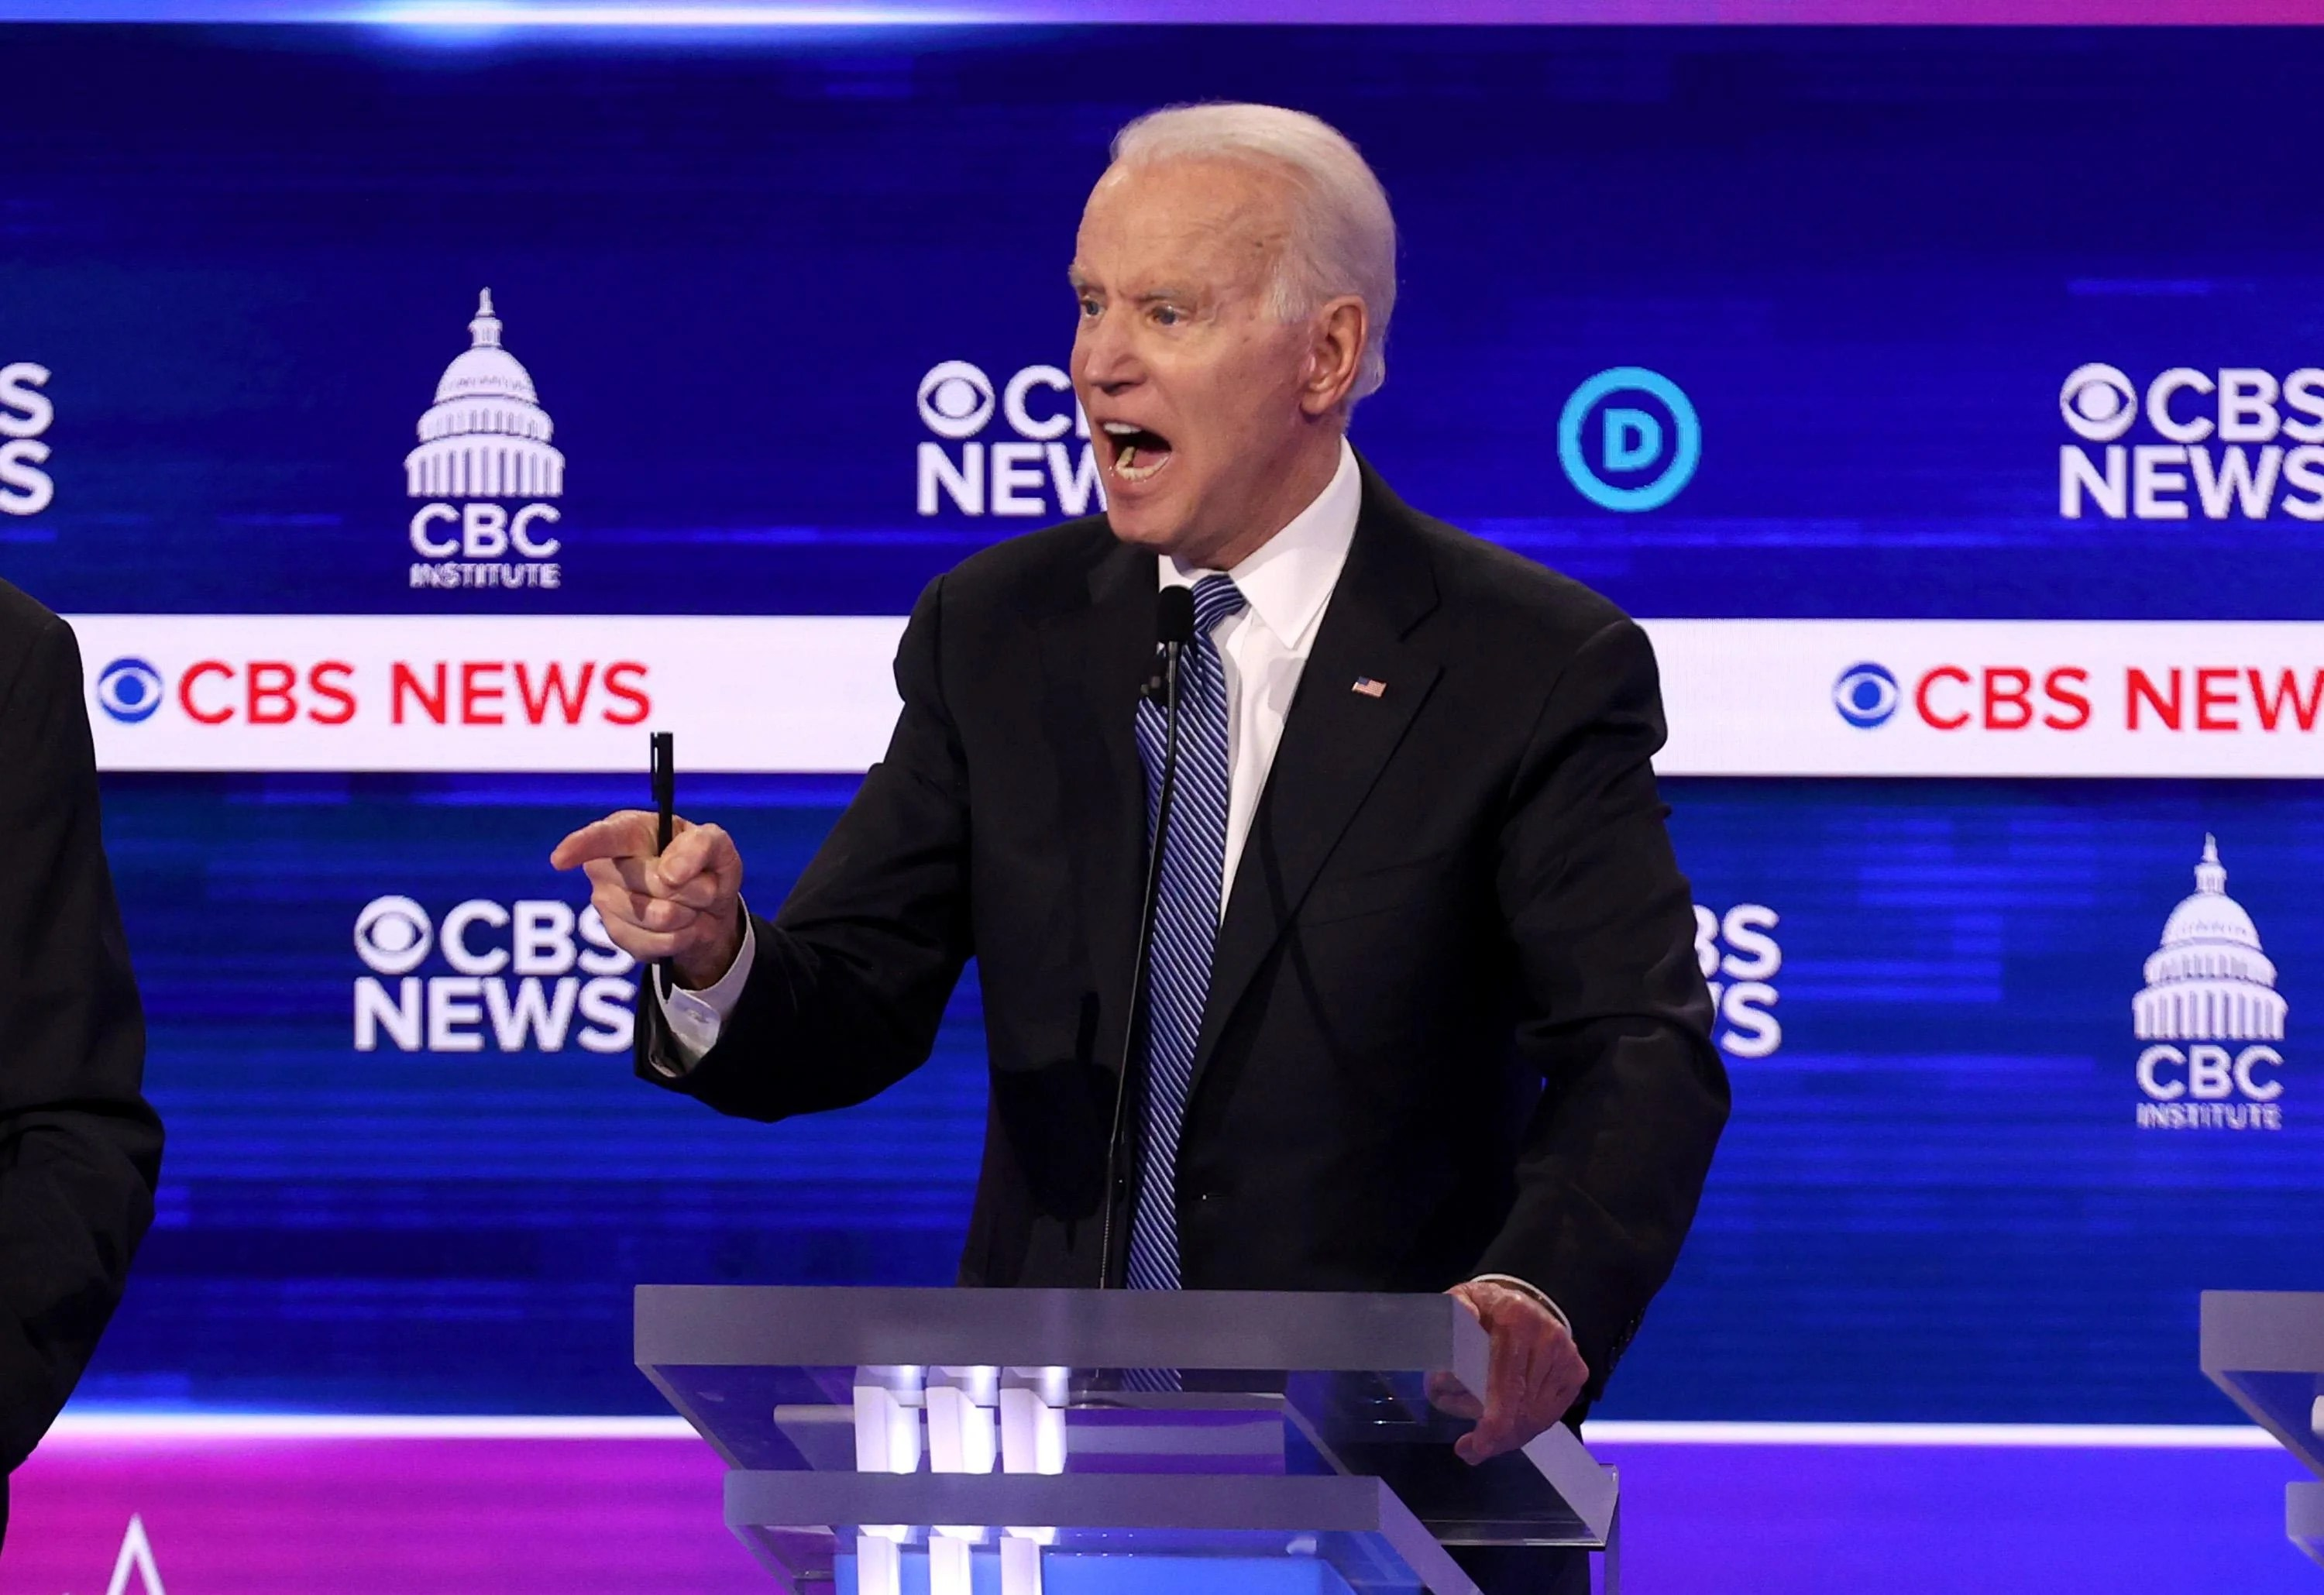 Joe Biden Campaign Walks Back False Nelson Mandela Story